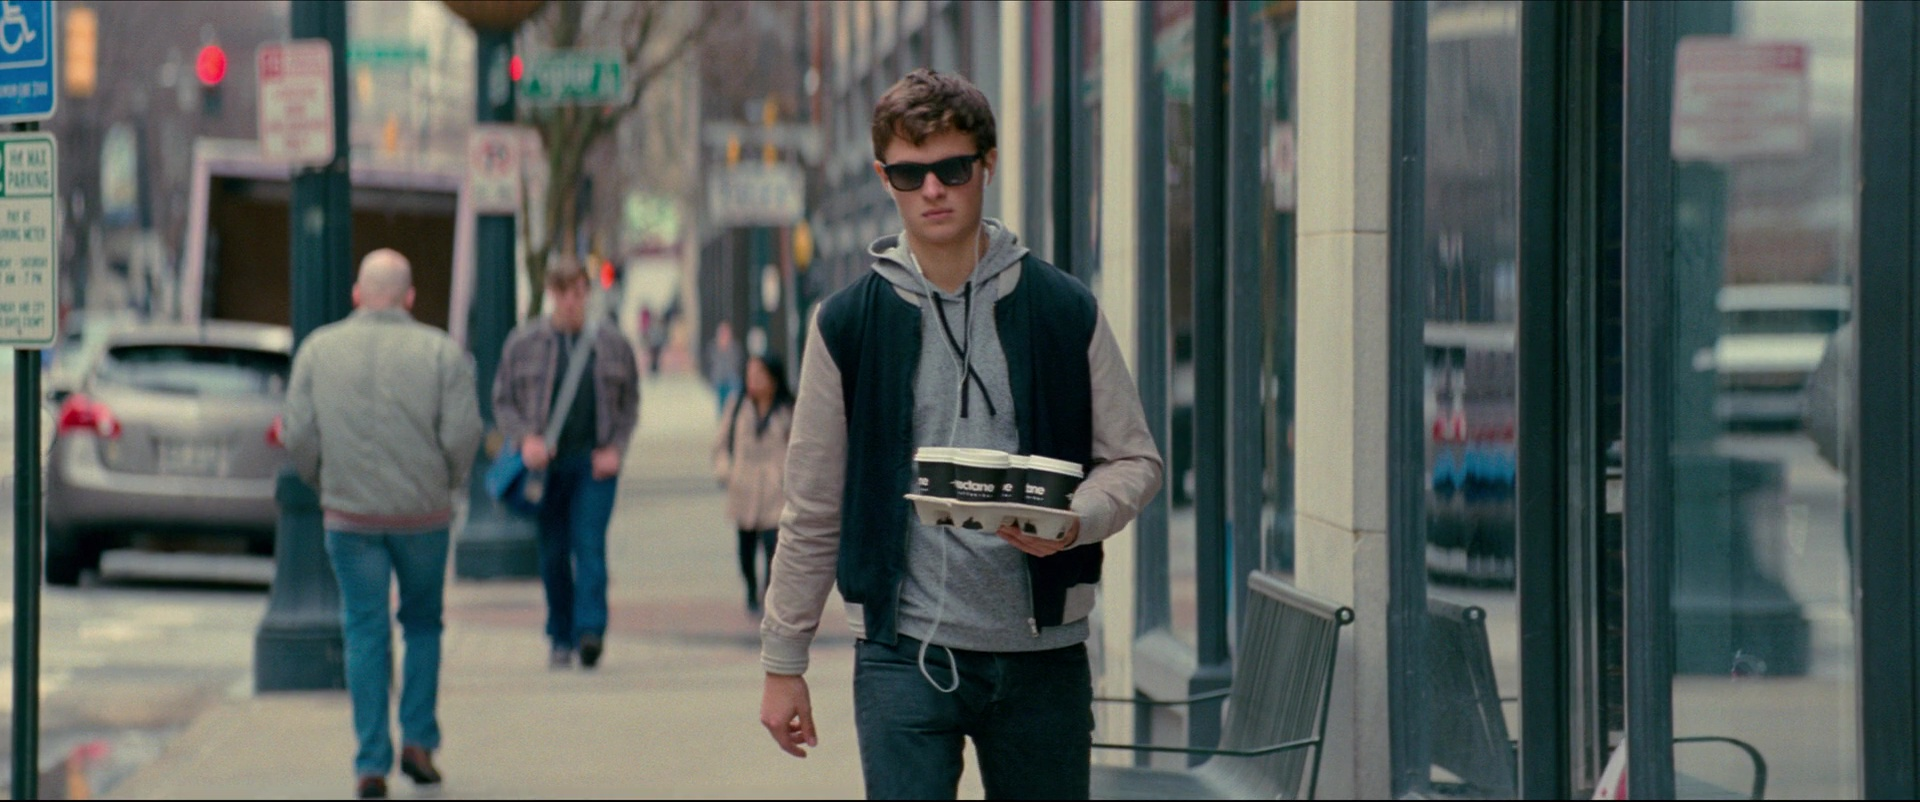 Octane Coffee Amp Bar In Baby Driver 2017 Movie